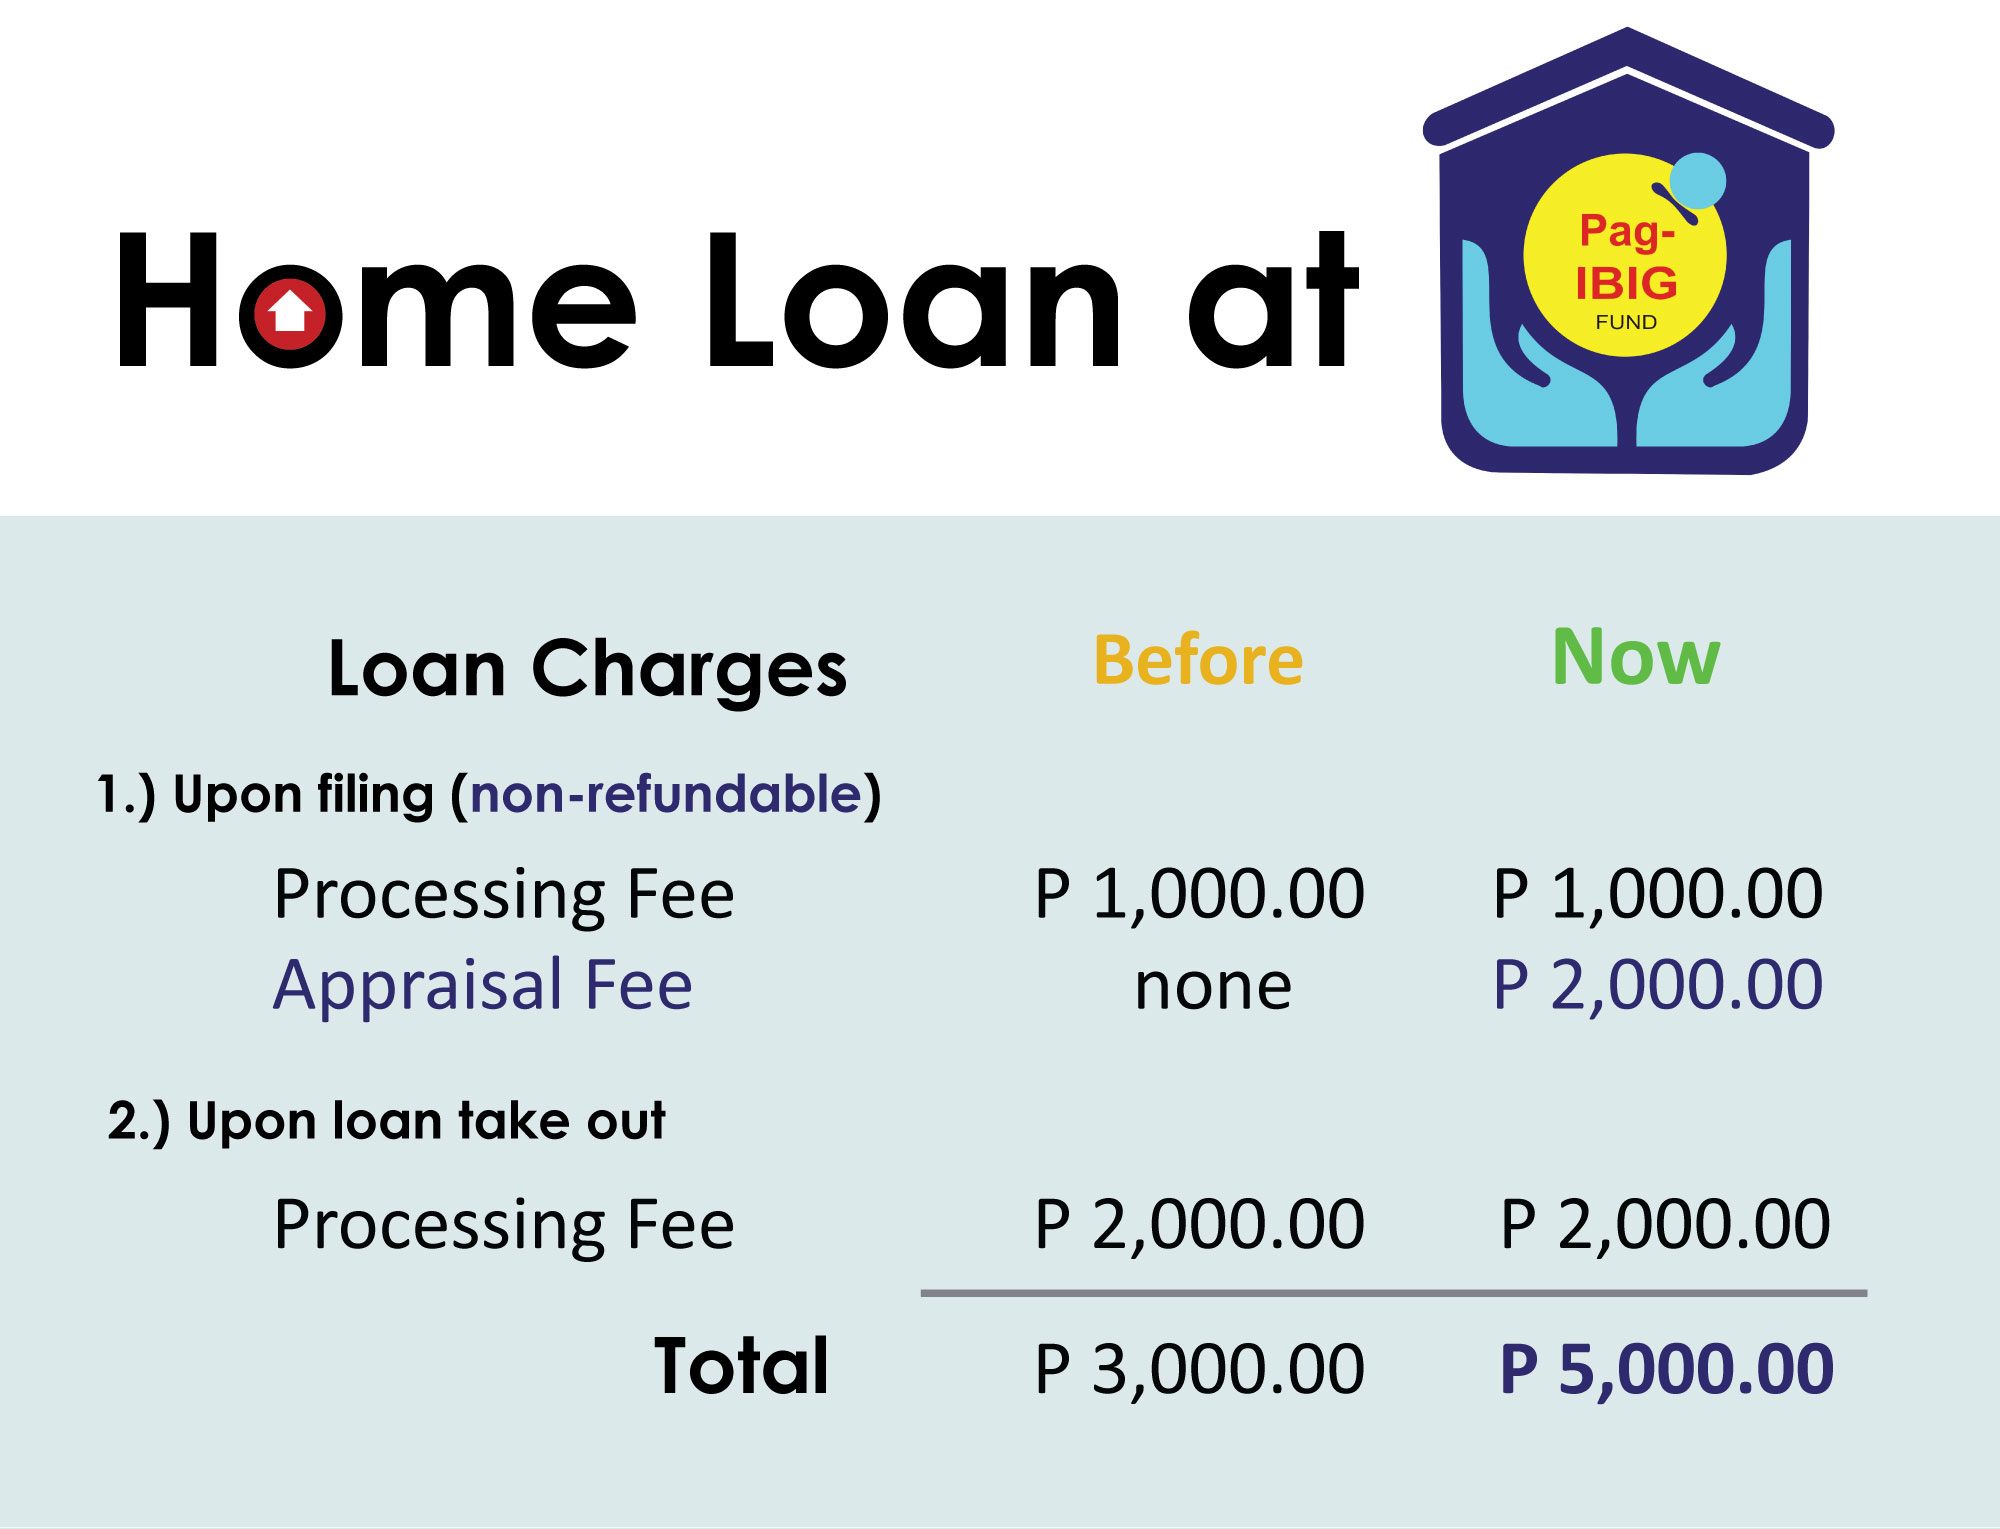 Pag-IBIG Fund Housing Loan charges update